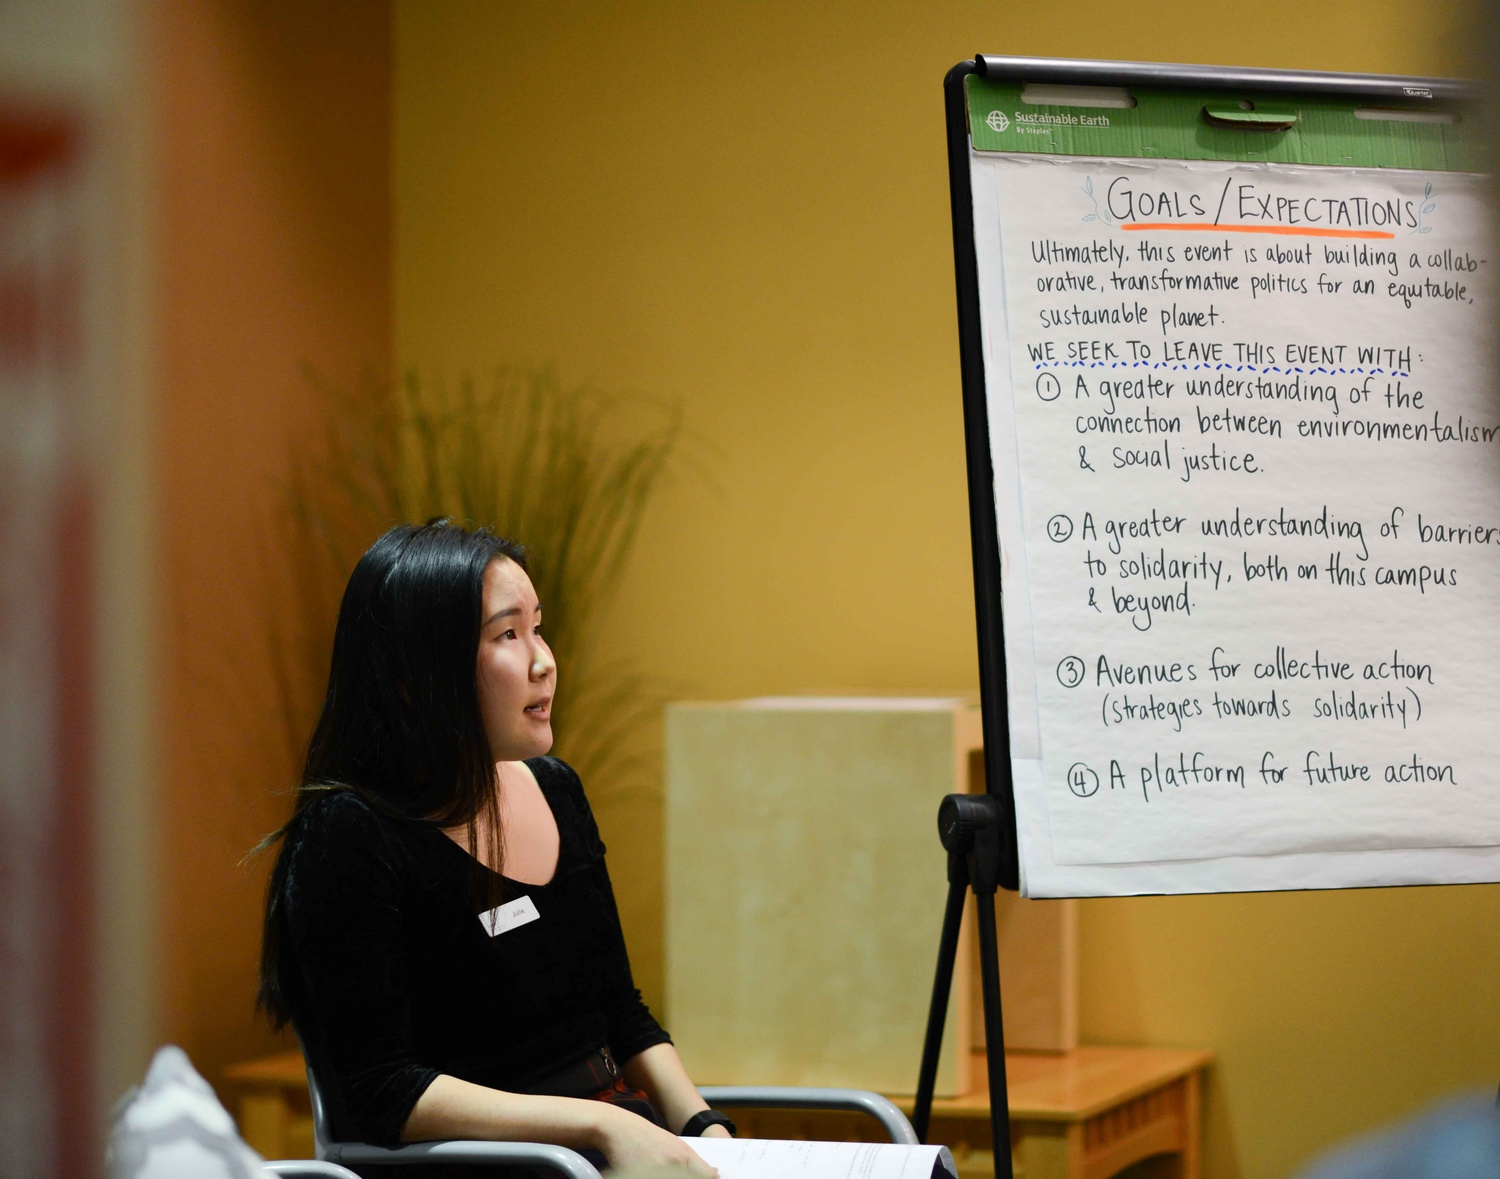 Julie S. Chung ('20) poses a question to the attendees of the Environmentalism as Social Justice discussion.